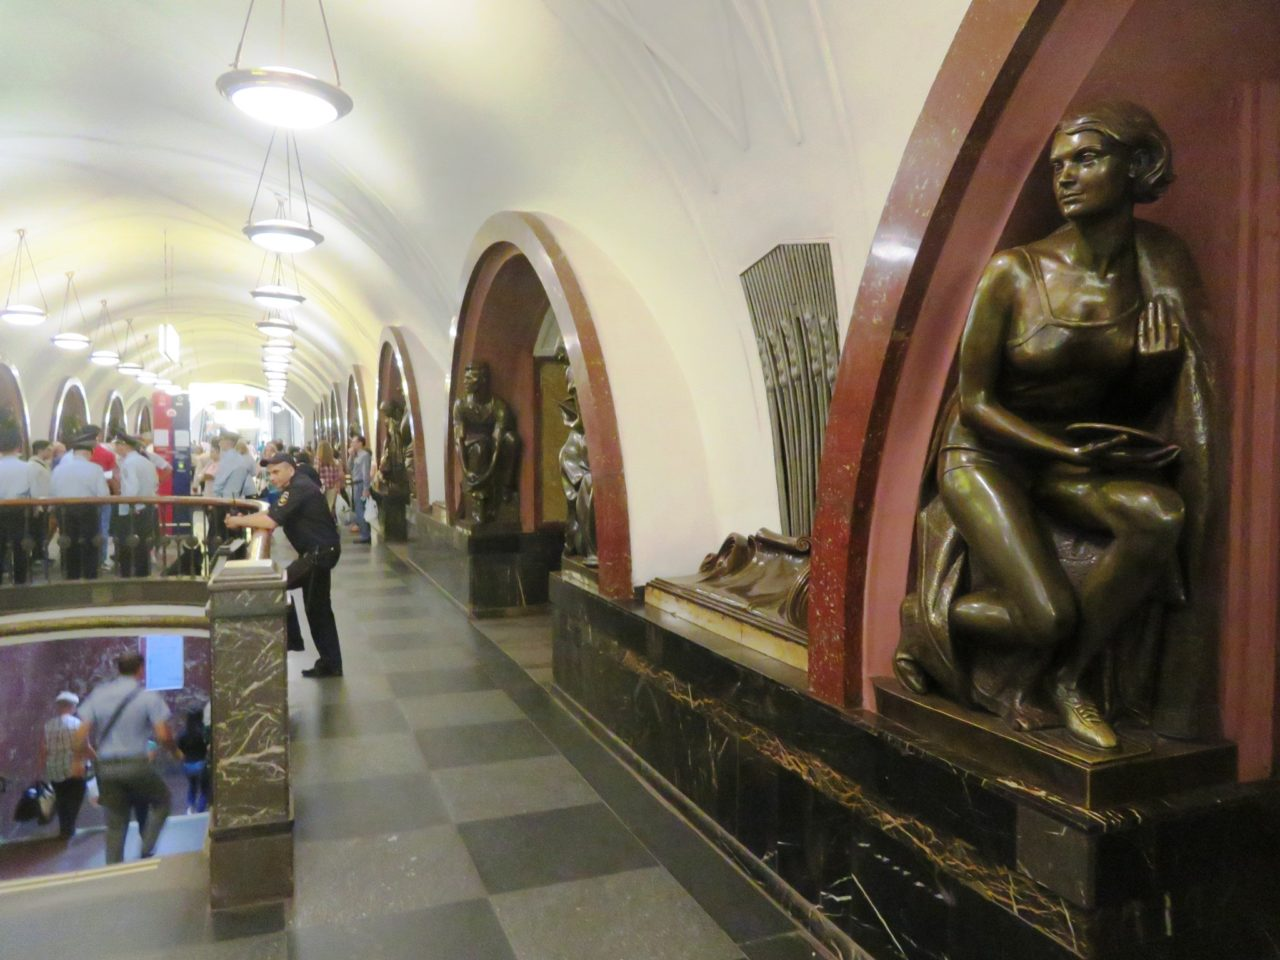 Exploring the metro in Moscow, Russia